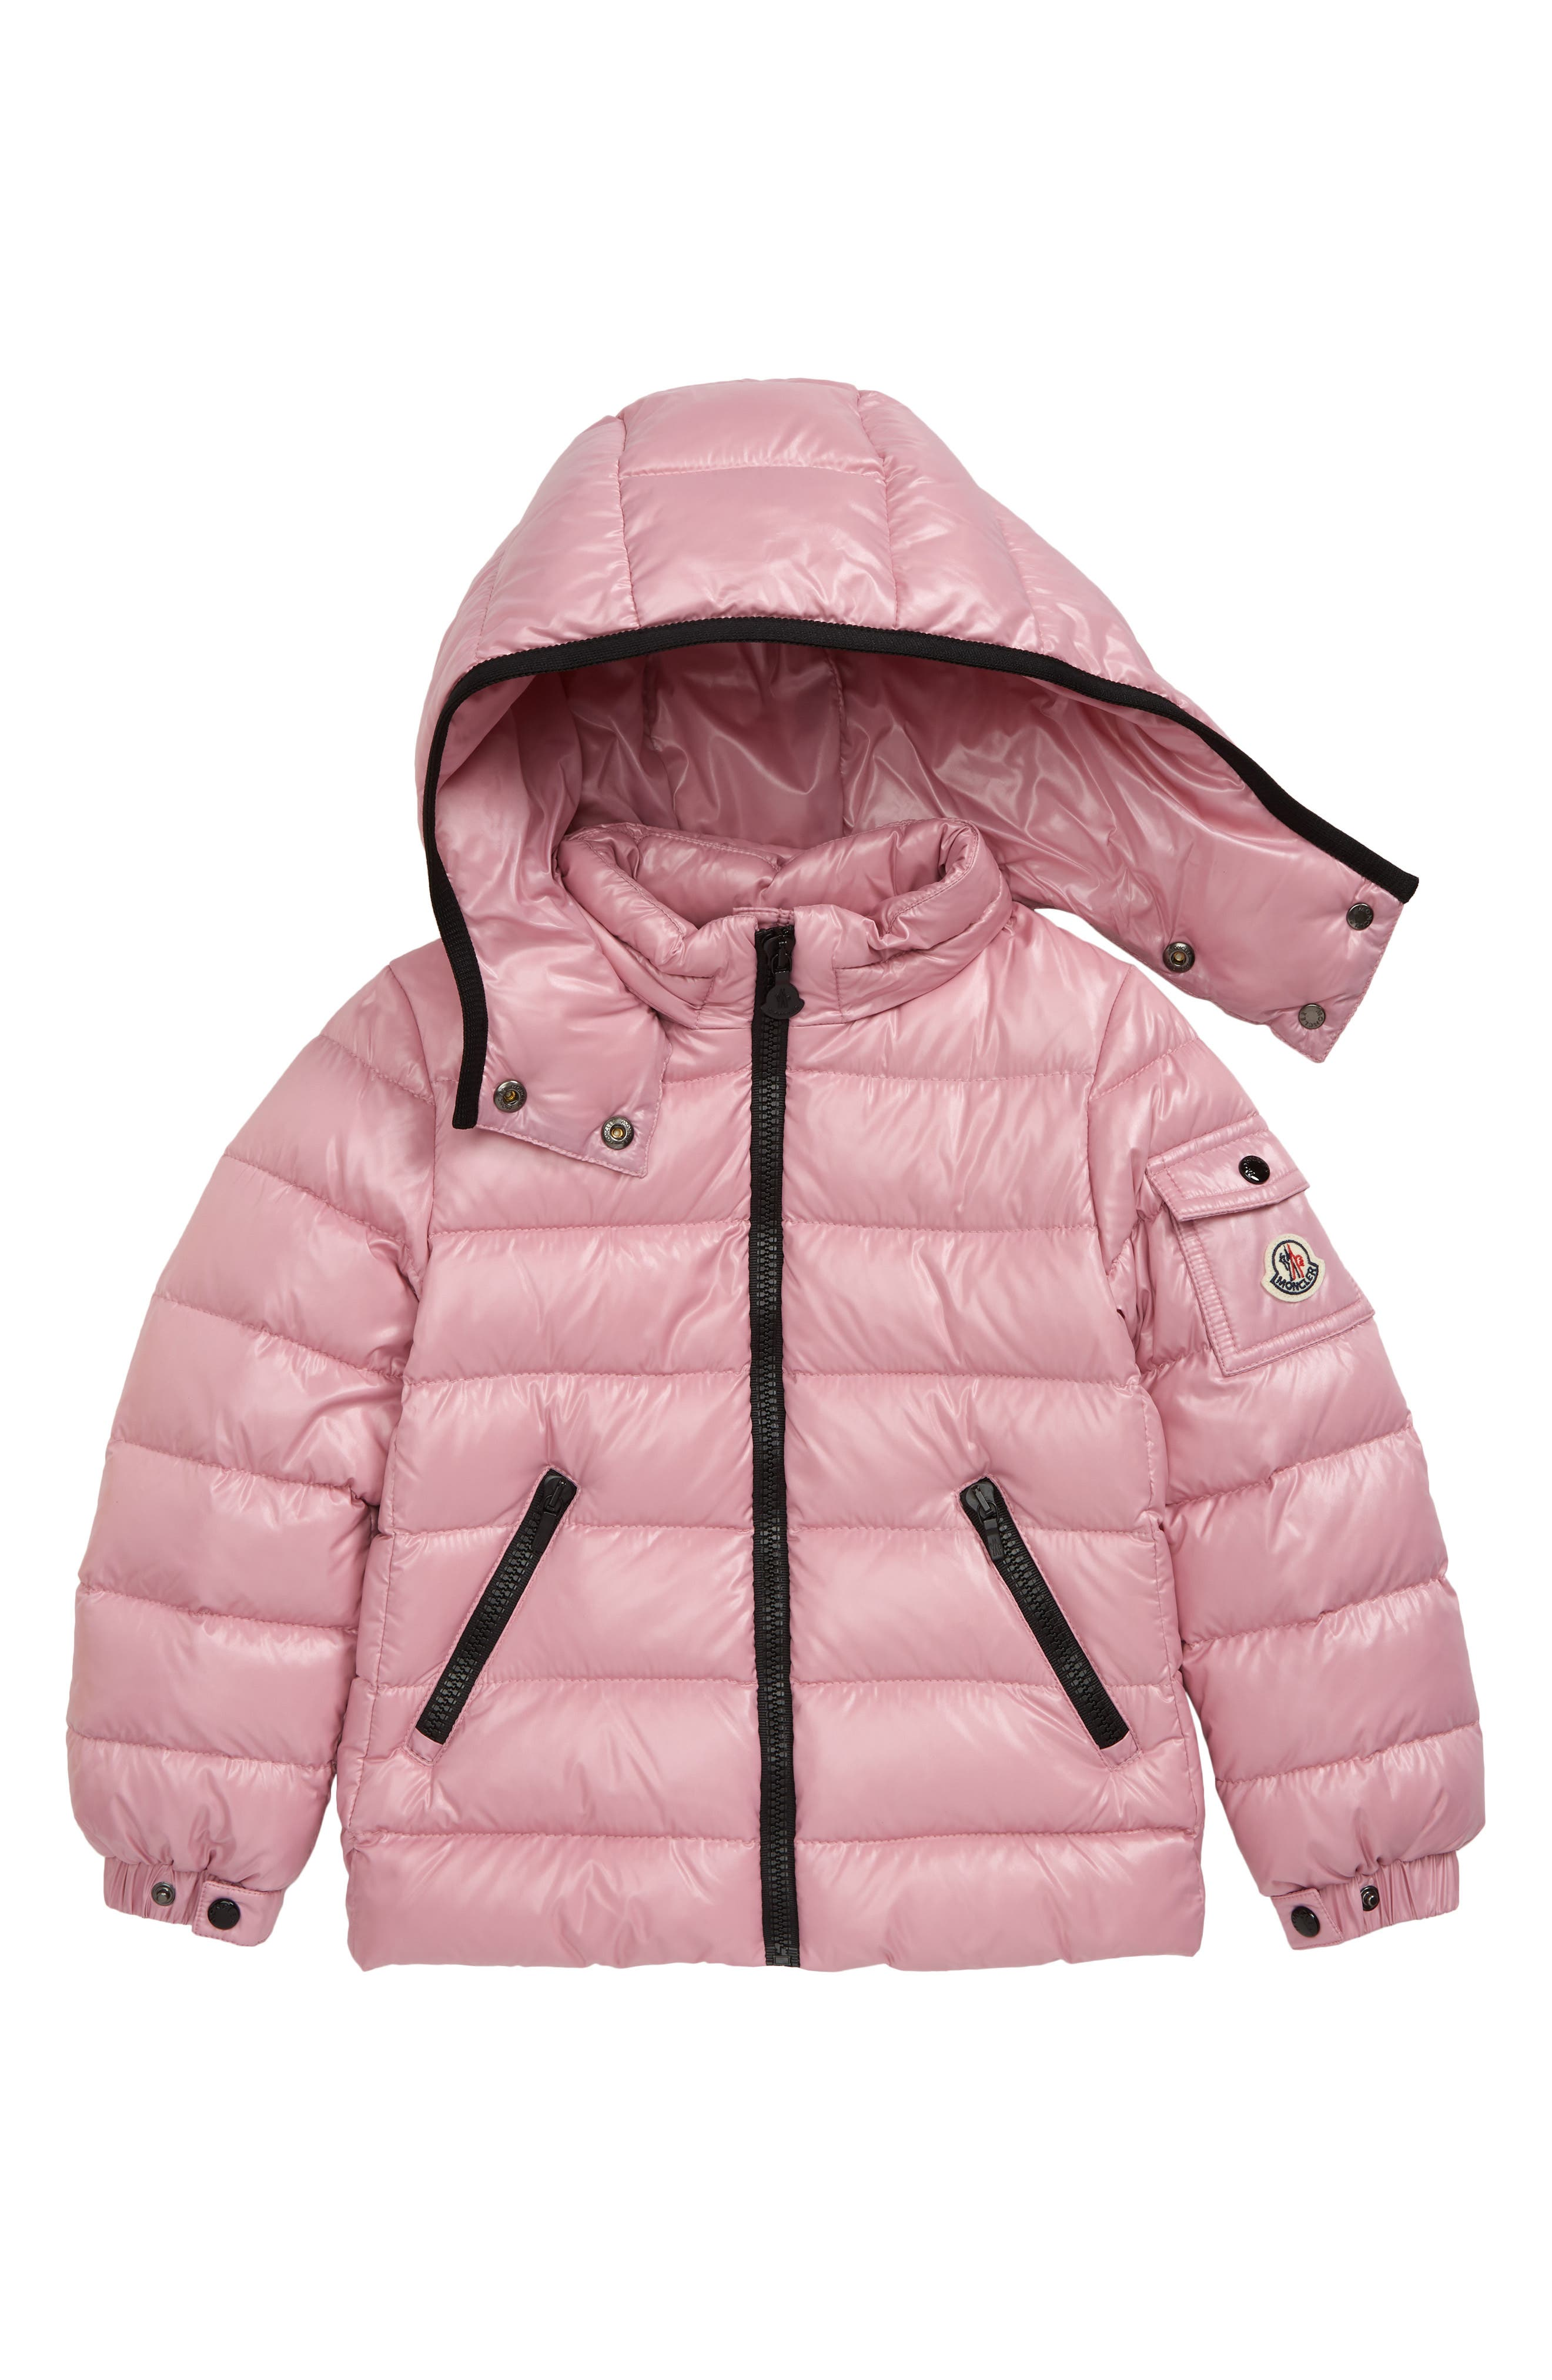 LAUSONS Boys Girls Winter Jacket Padded Down Coat with Faux Fur Hood